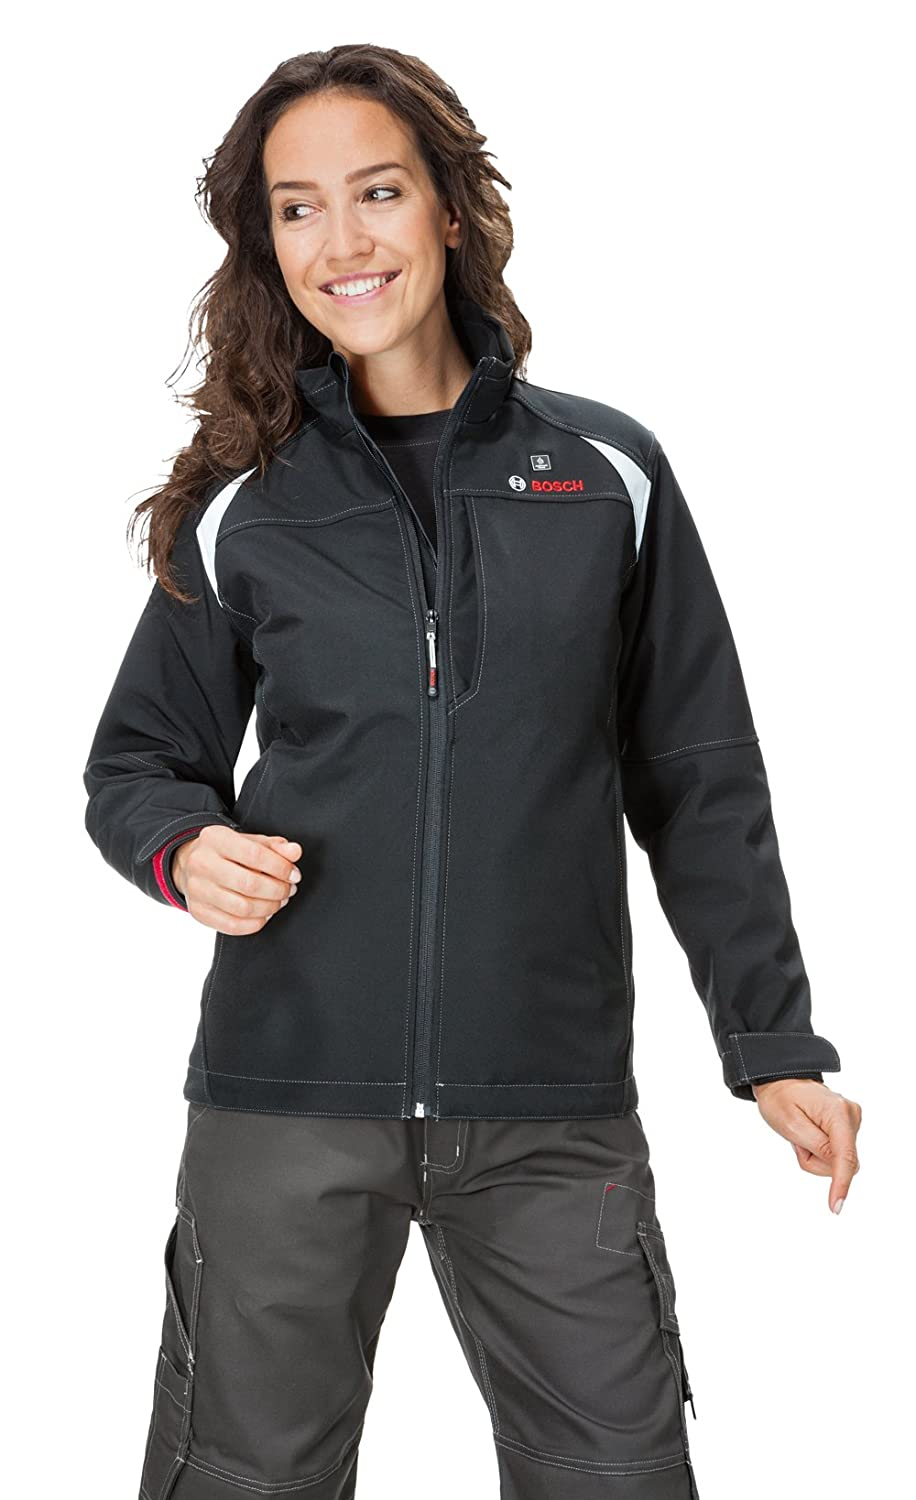 Bosch PSJ120-102 womens 12-volt Max Lithium-Ion Soft Shell Heated Jacket Kit with 2.0Ah Battery Charger and Holster